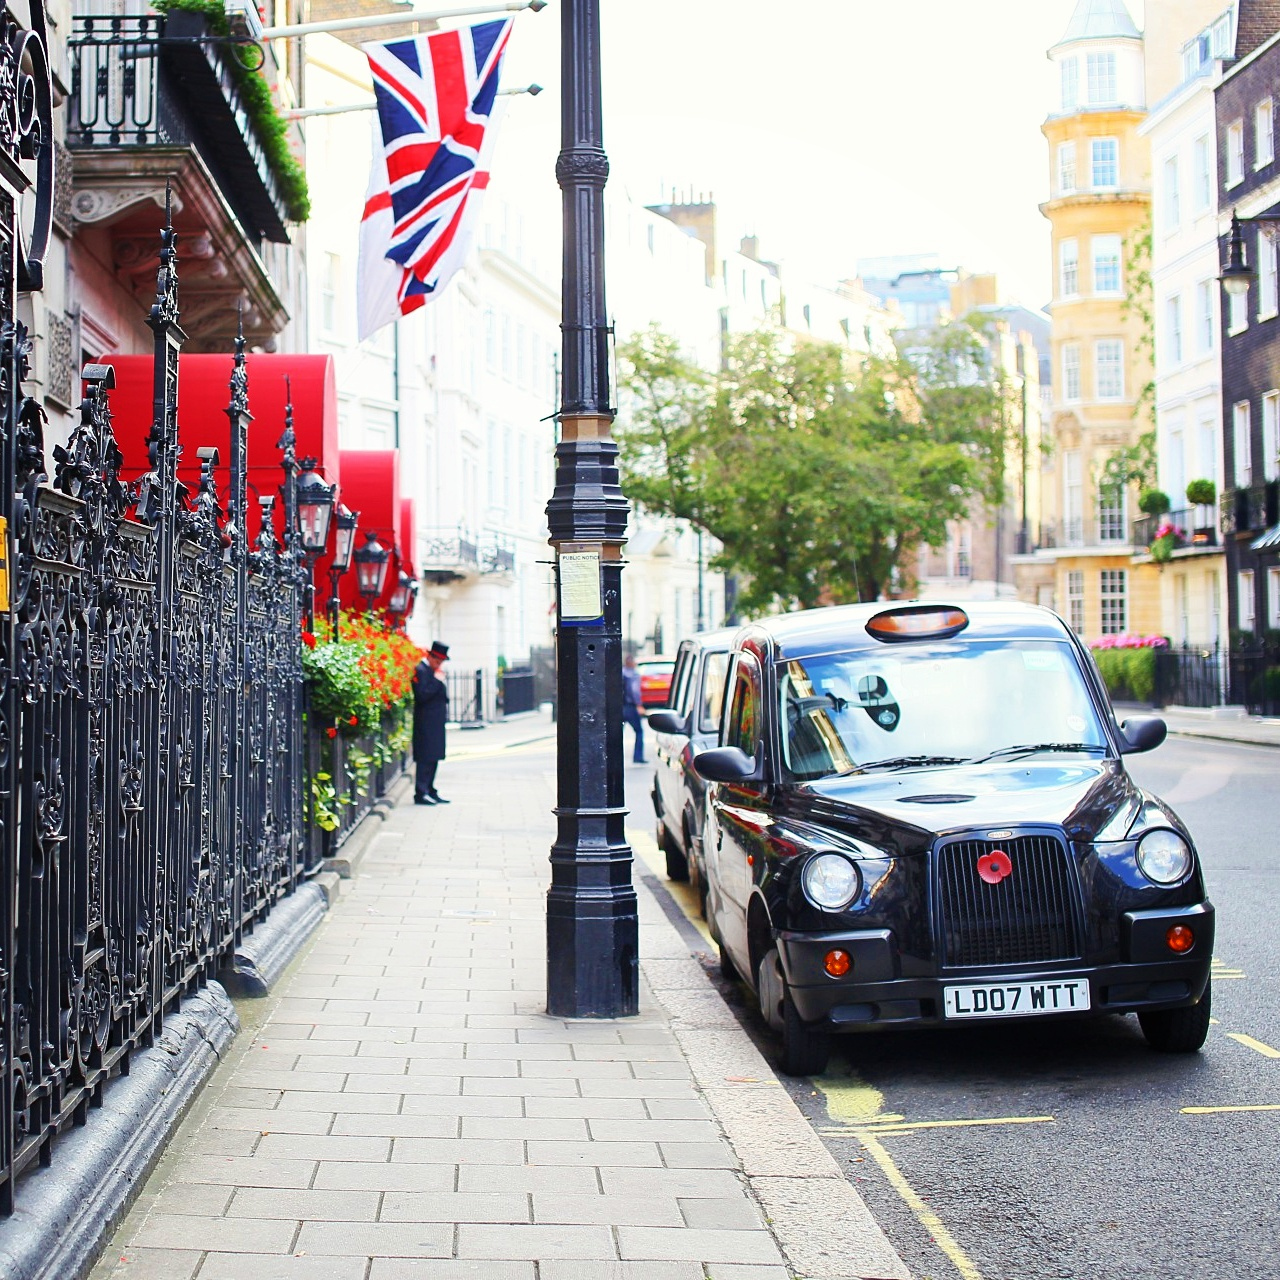 Piture-perfect London street in Mayfair